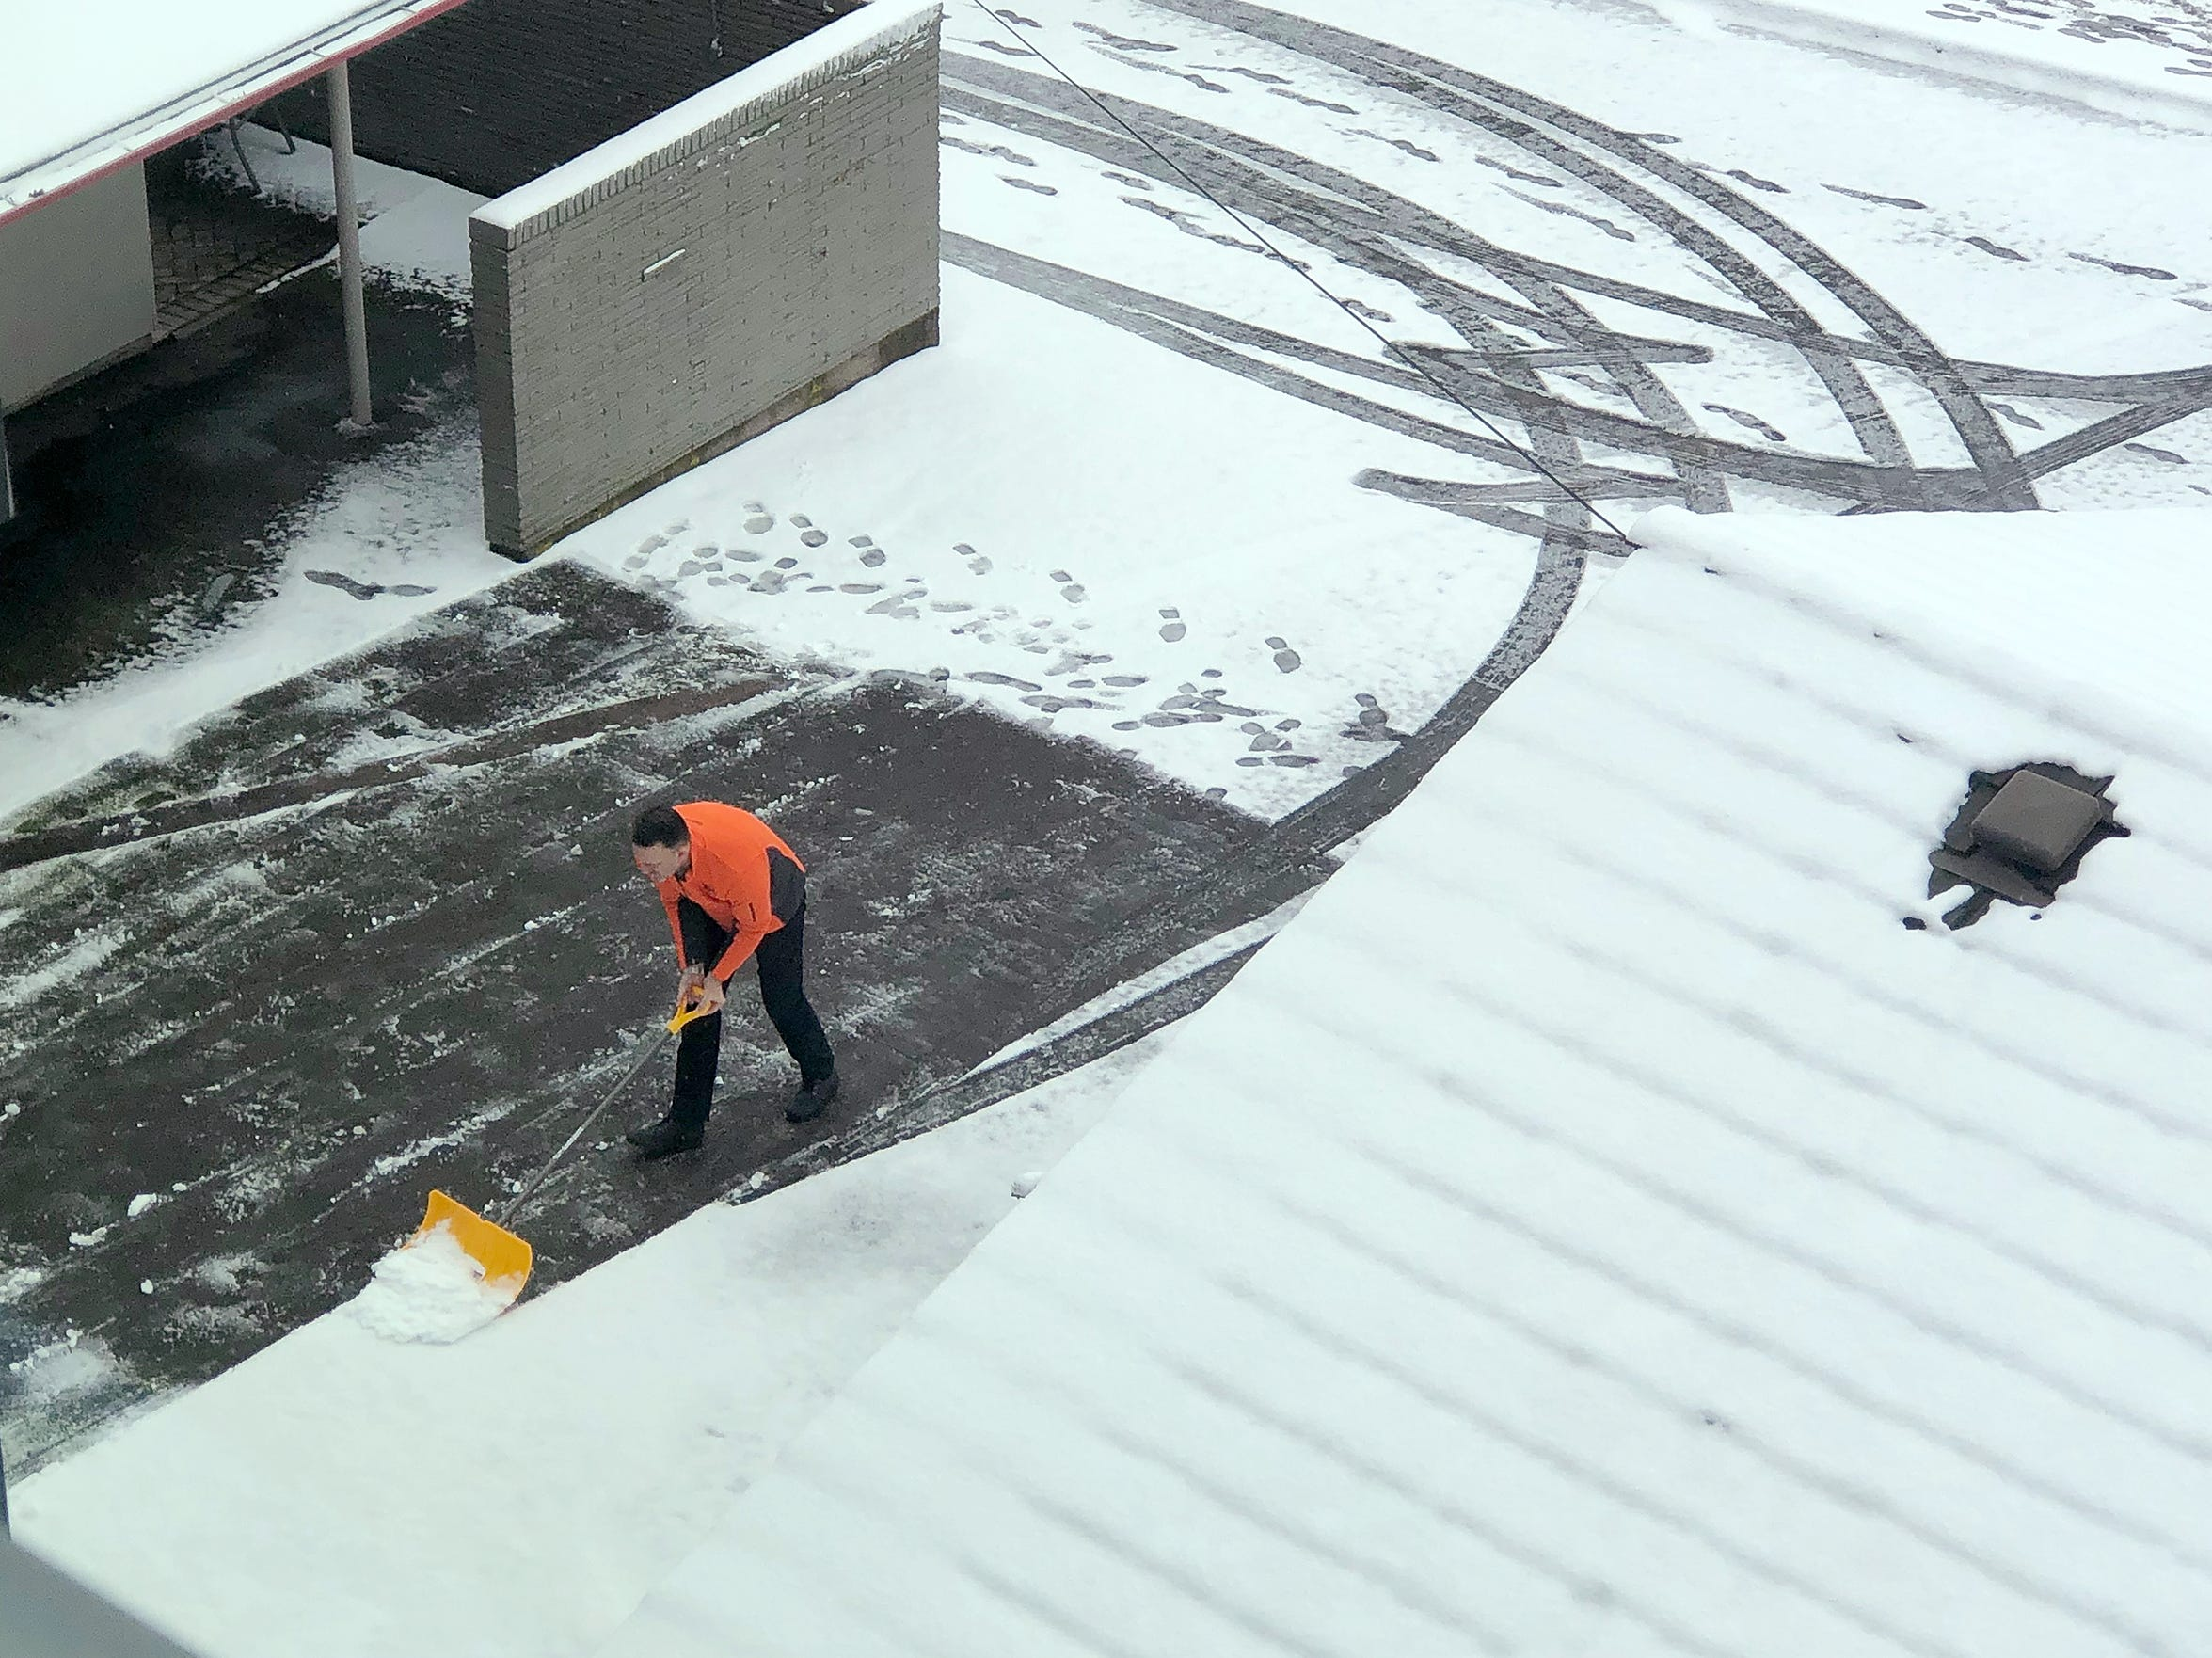 A worker shovels snow from a parking lot along Commercial Street SE in Salem Wednesday February 27, 2019. For a second day this week Salem residents woke up to a blanket of snow.